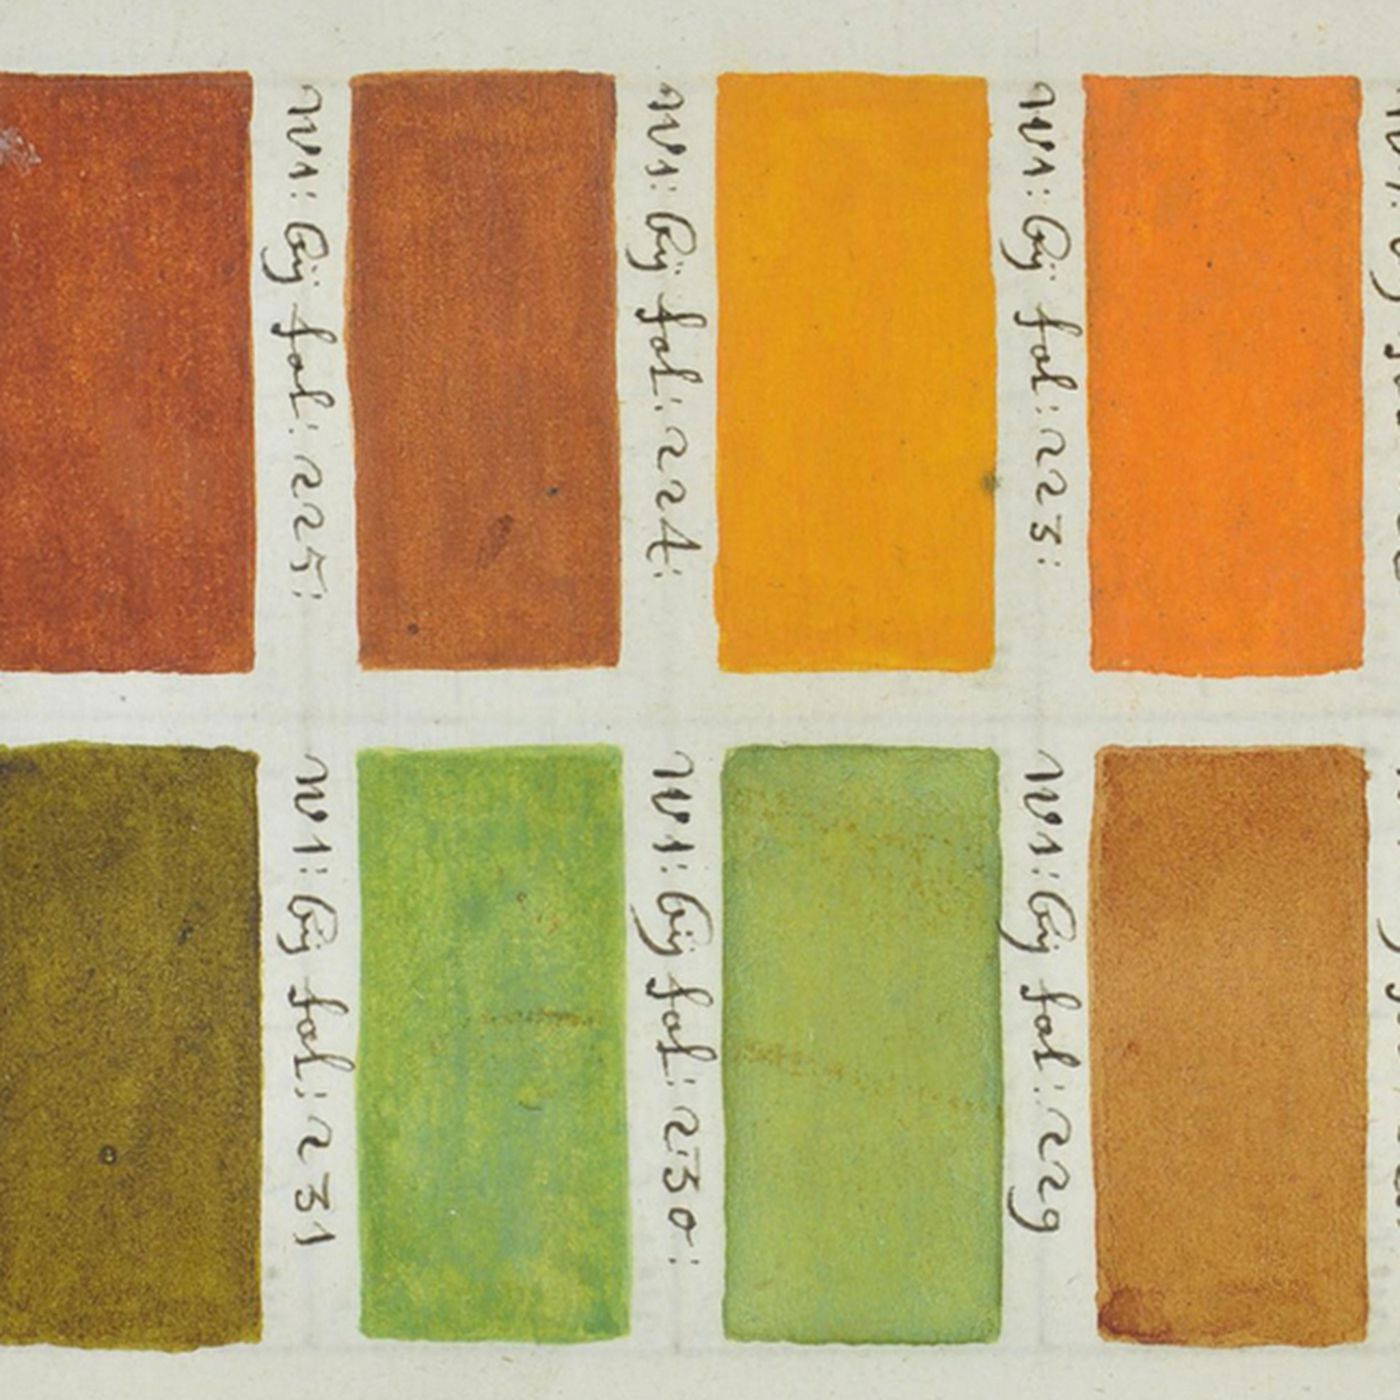 Before Pantone, there was this hand-painted 17th century